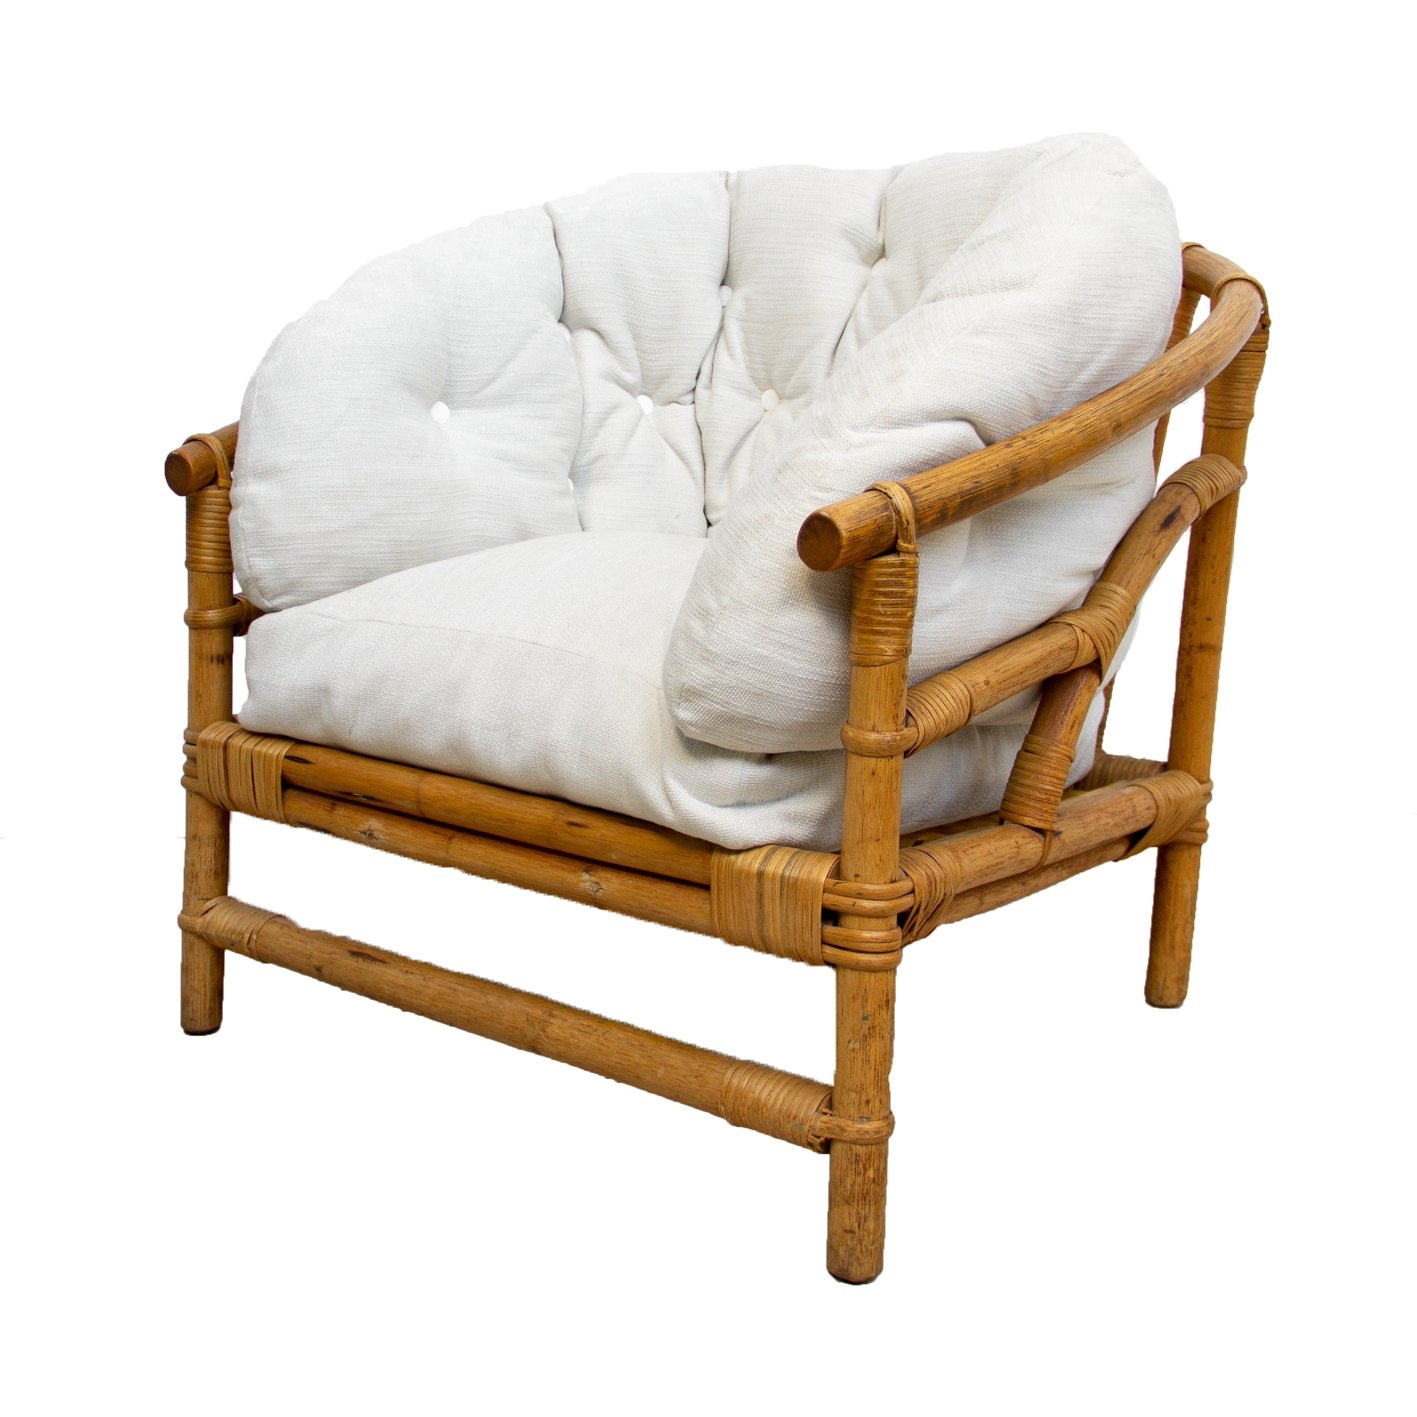 Rattan Chair With Reupholstered White Cushions 84700